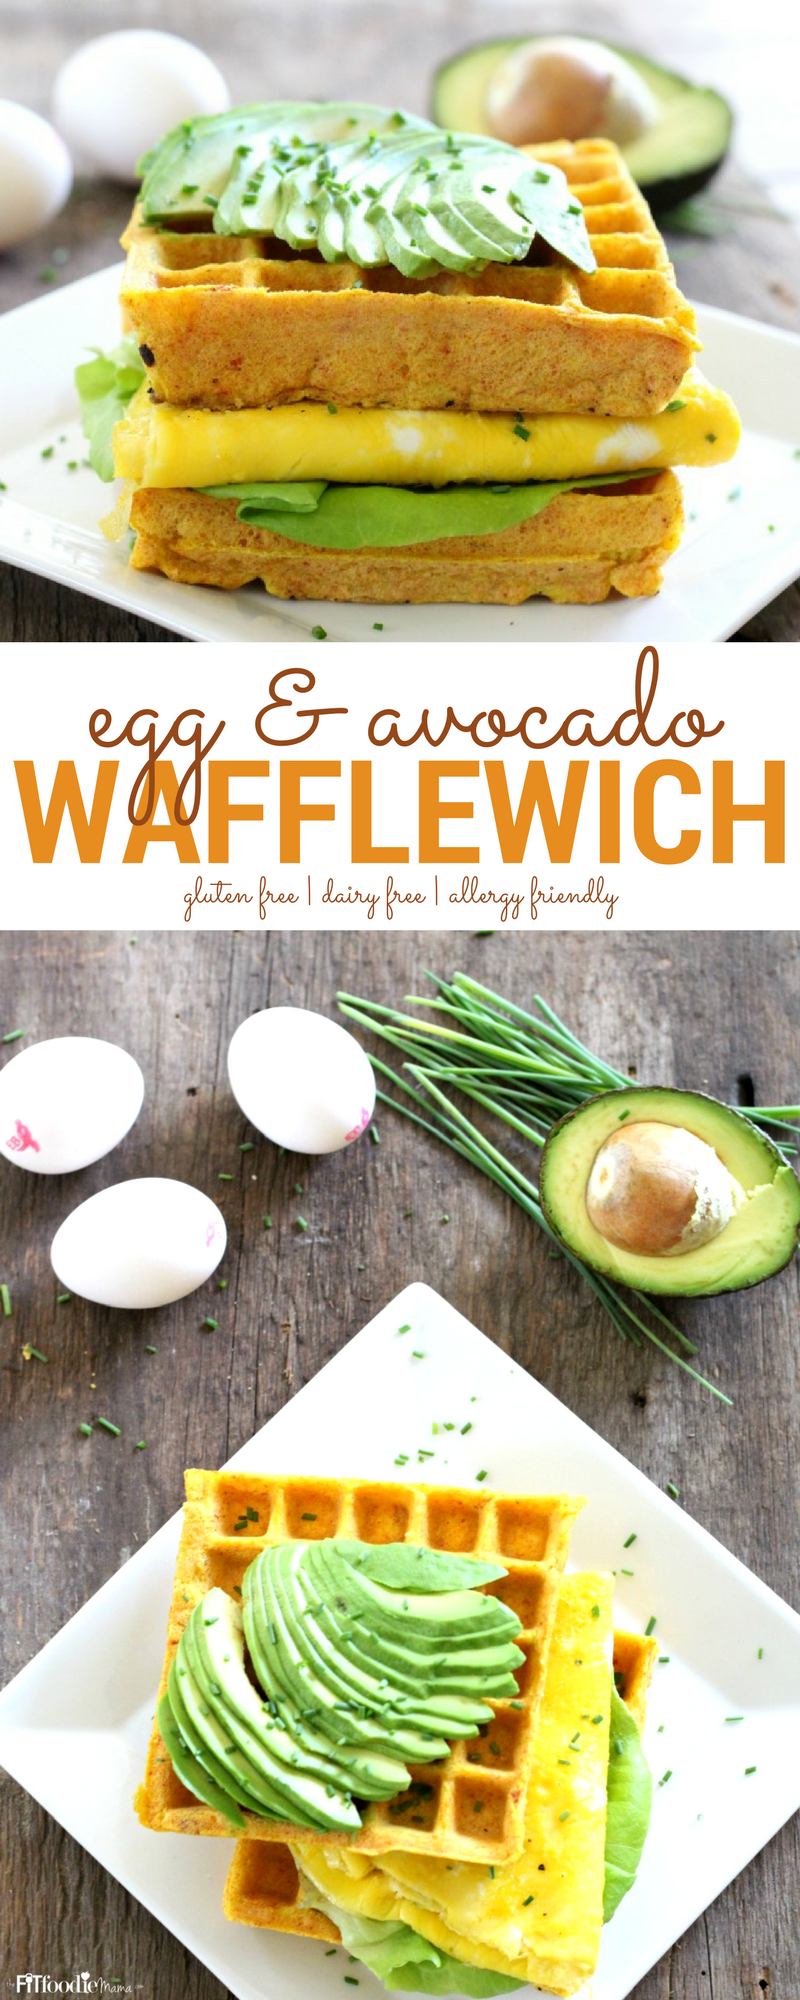 Satisfy your post-run hunger with this allergy friendly Egg & Avocado Recovery Wafflewich! It's gluten free, dairy free and packed with nutritious protein from Eggland's Best eggs!